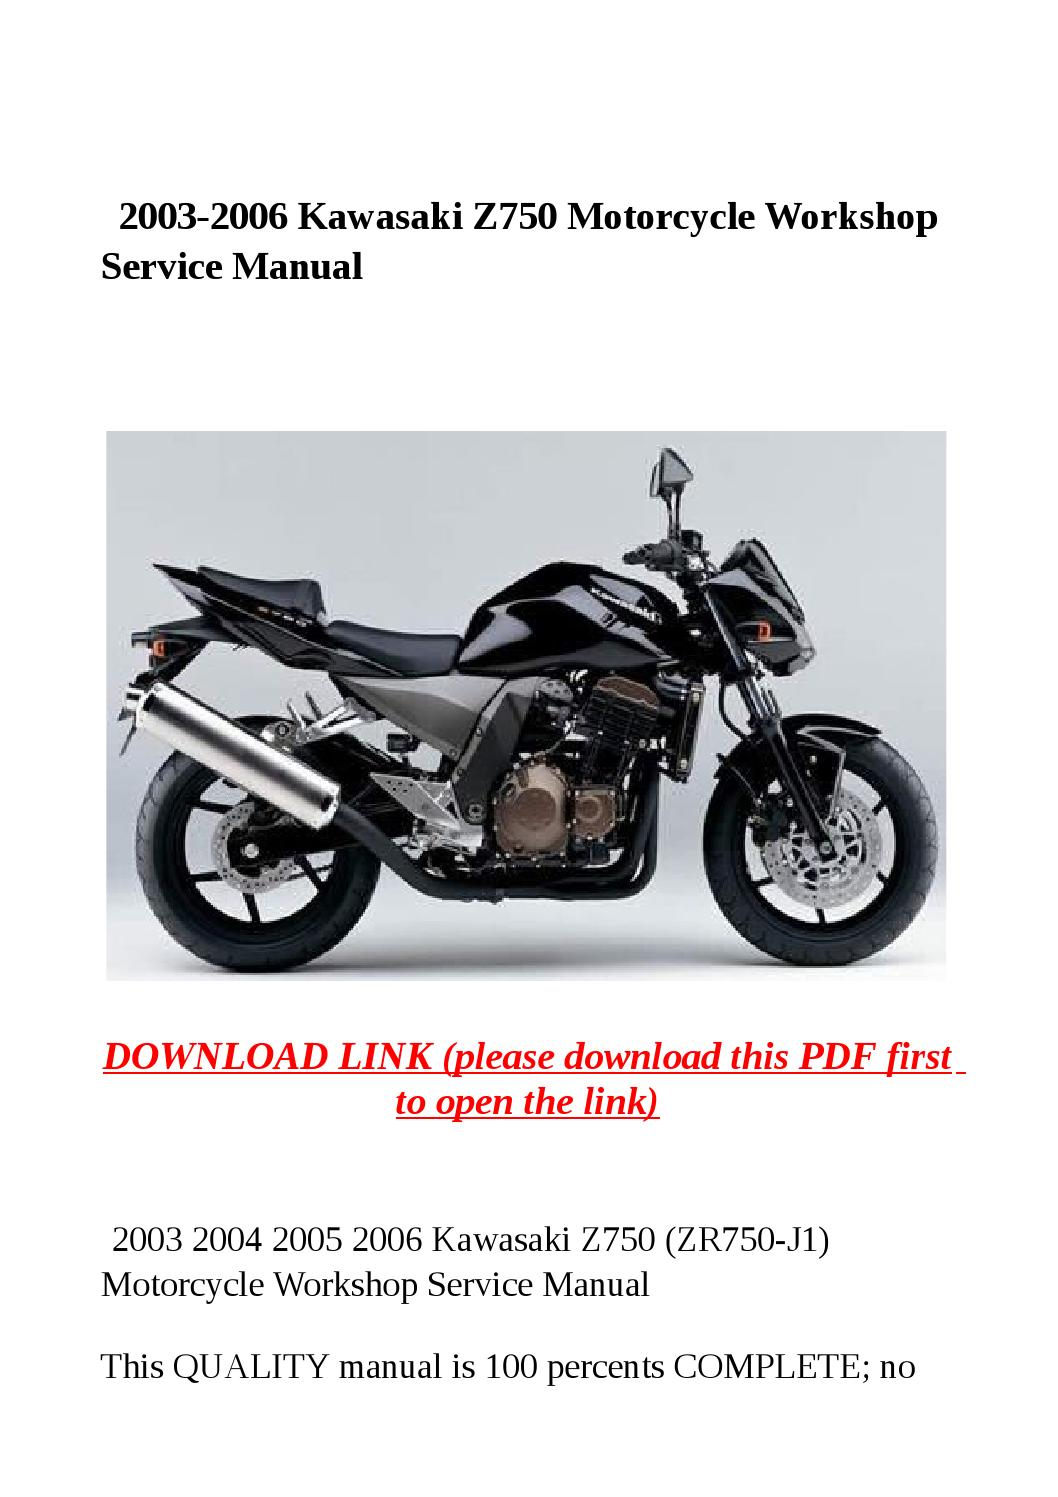 2003 2006 kawasaki z750 motorcycle workshop service manual by yghj - issuu